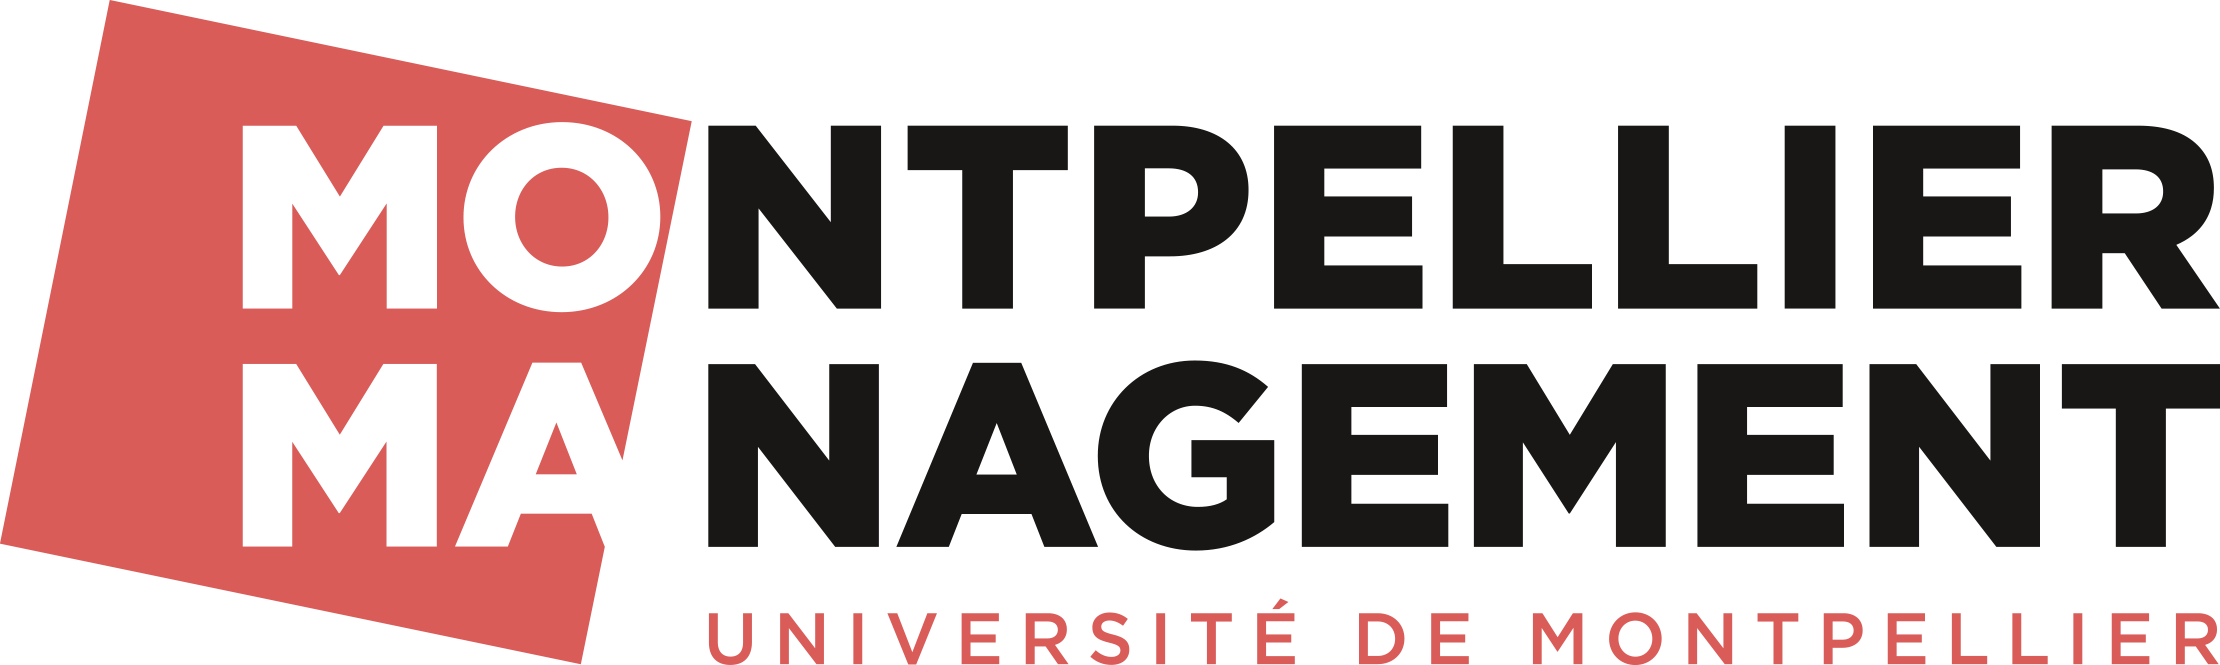 Logo de Montpellier Management